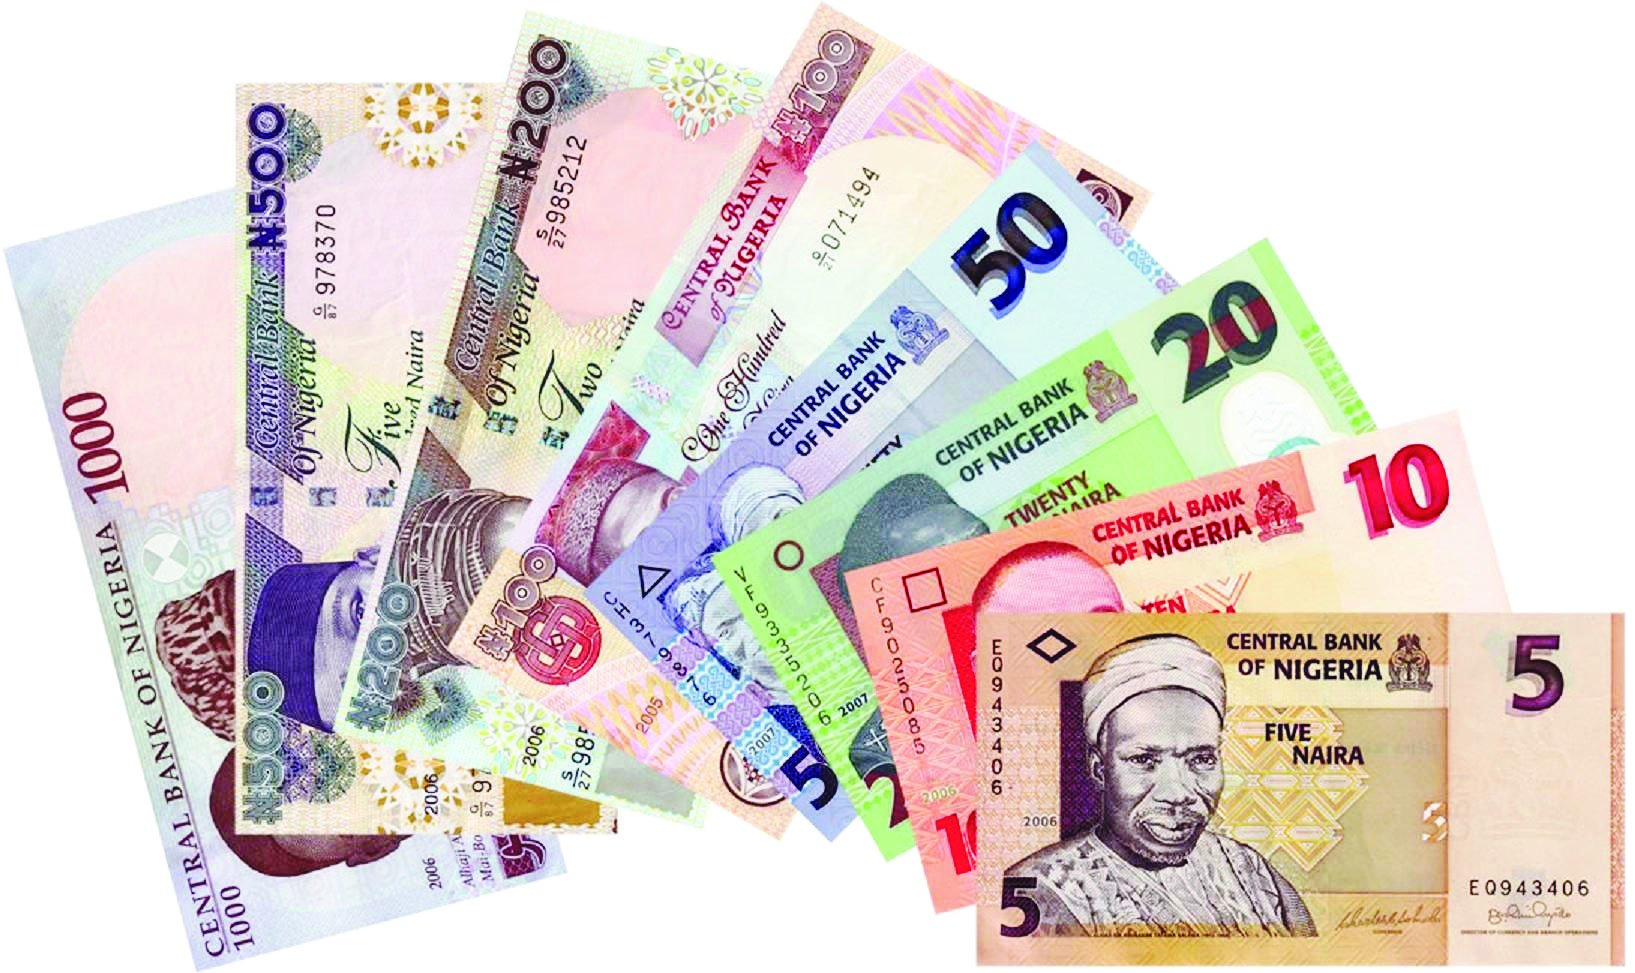 Nigeria China Currency Swap Cbn S Last Ditch Effort To Salvage Naira